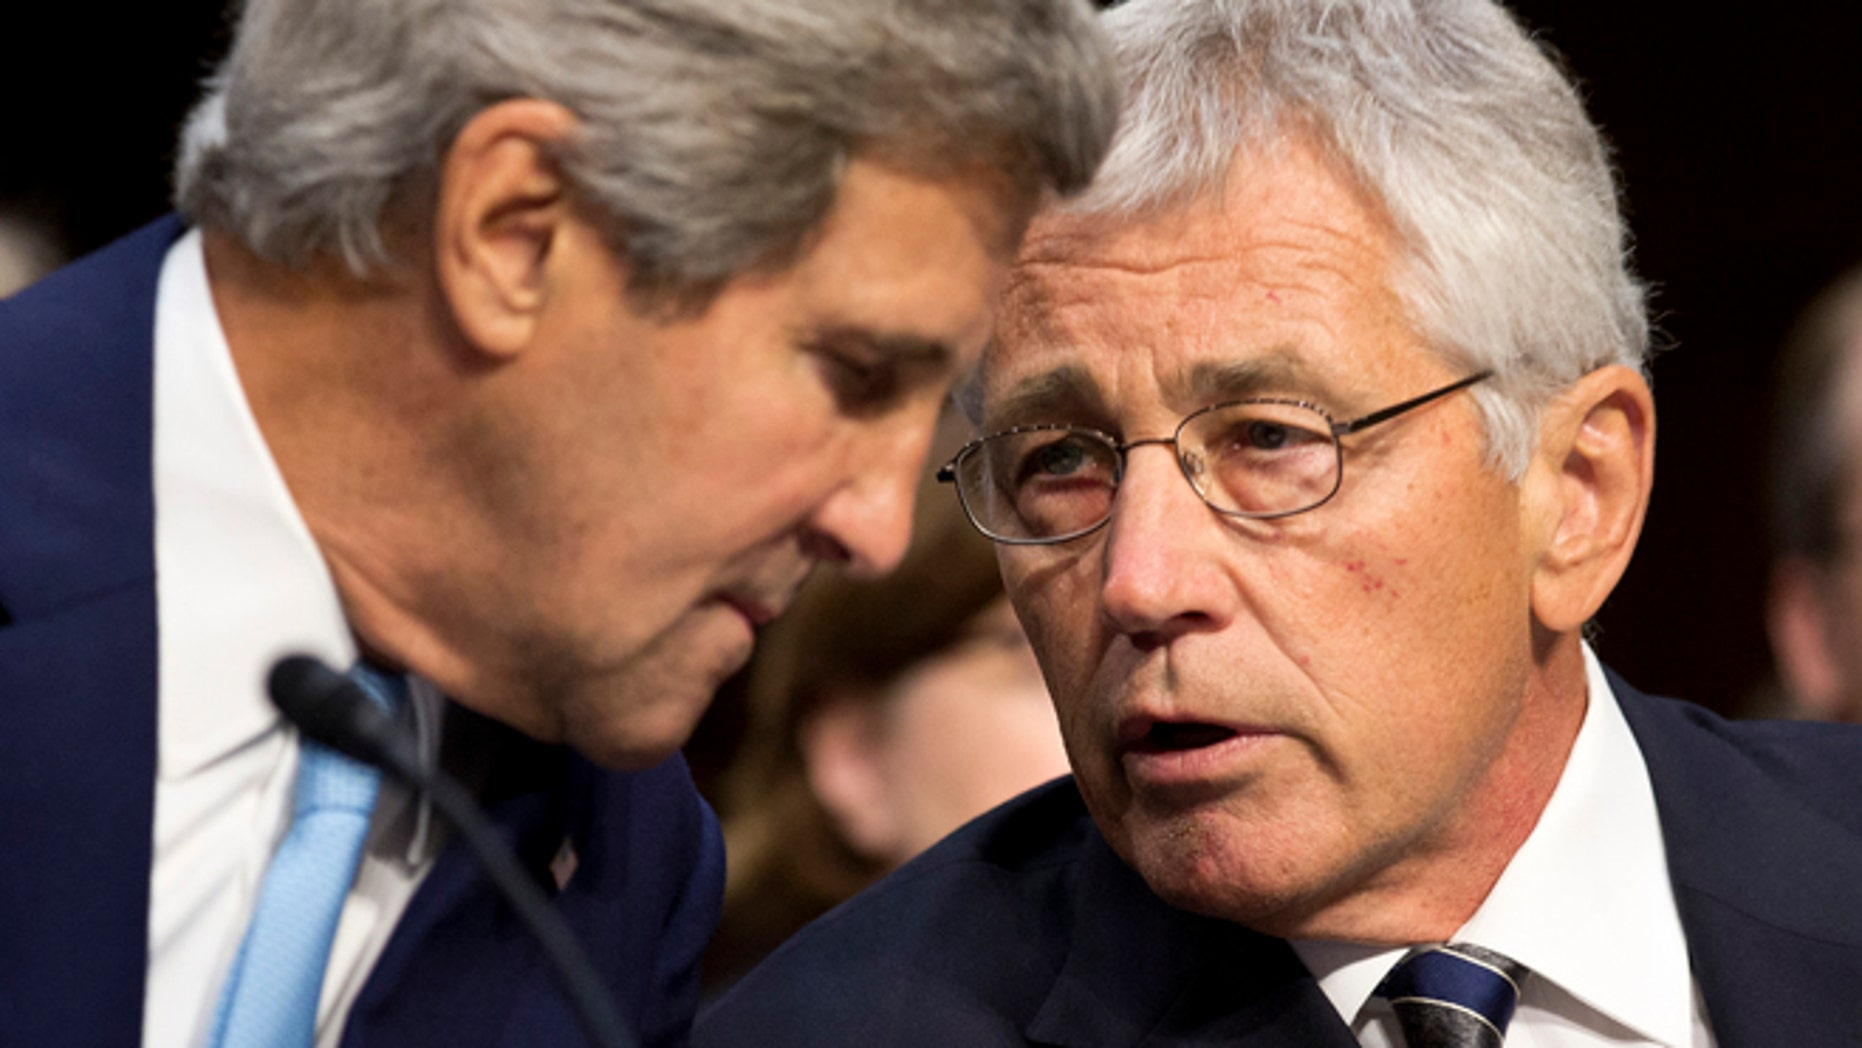 """Sept. 3: From the left, U.S. Secretary of State John Kerry and Secretary of Defense Chuck Hagel speak on Syria in front of the Senate Foreign Relations Committee. Hagel warned the committee """"a massive stockpile of chemical weapons that threatens our treaty ally, the  Republic of Korea, and the 28,000 U.S. troops stationed there."""""""